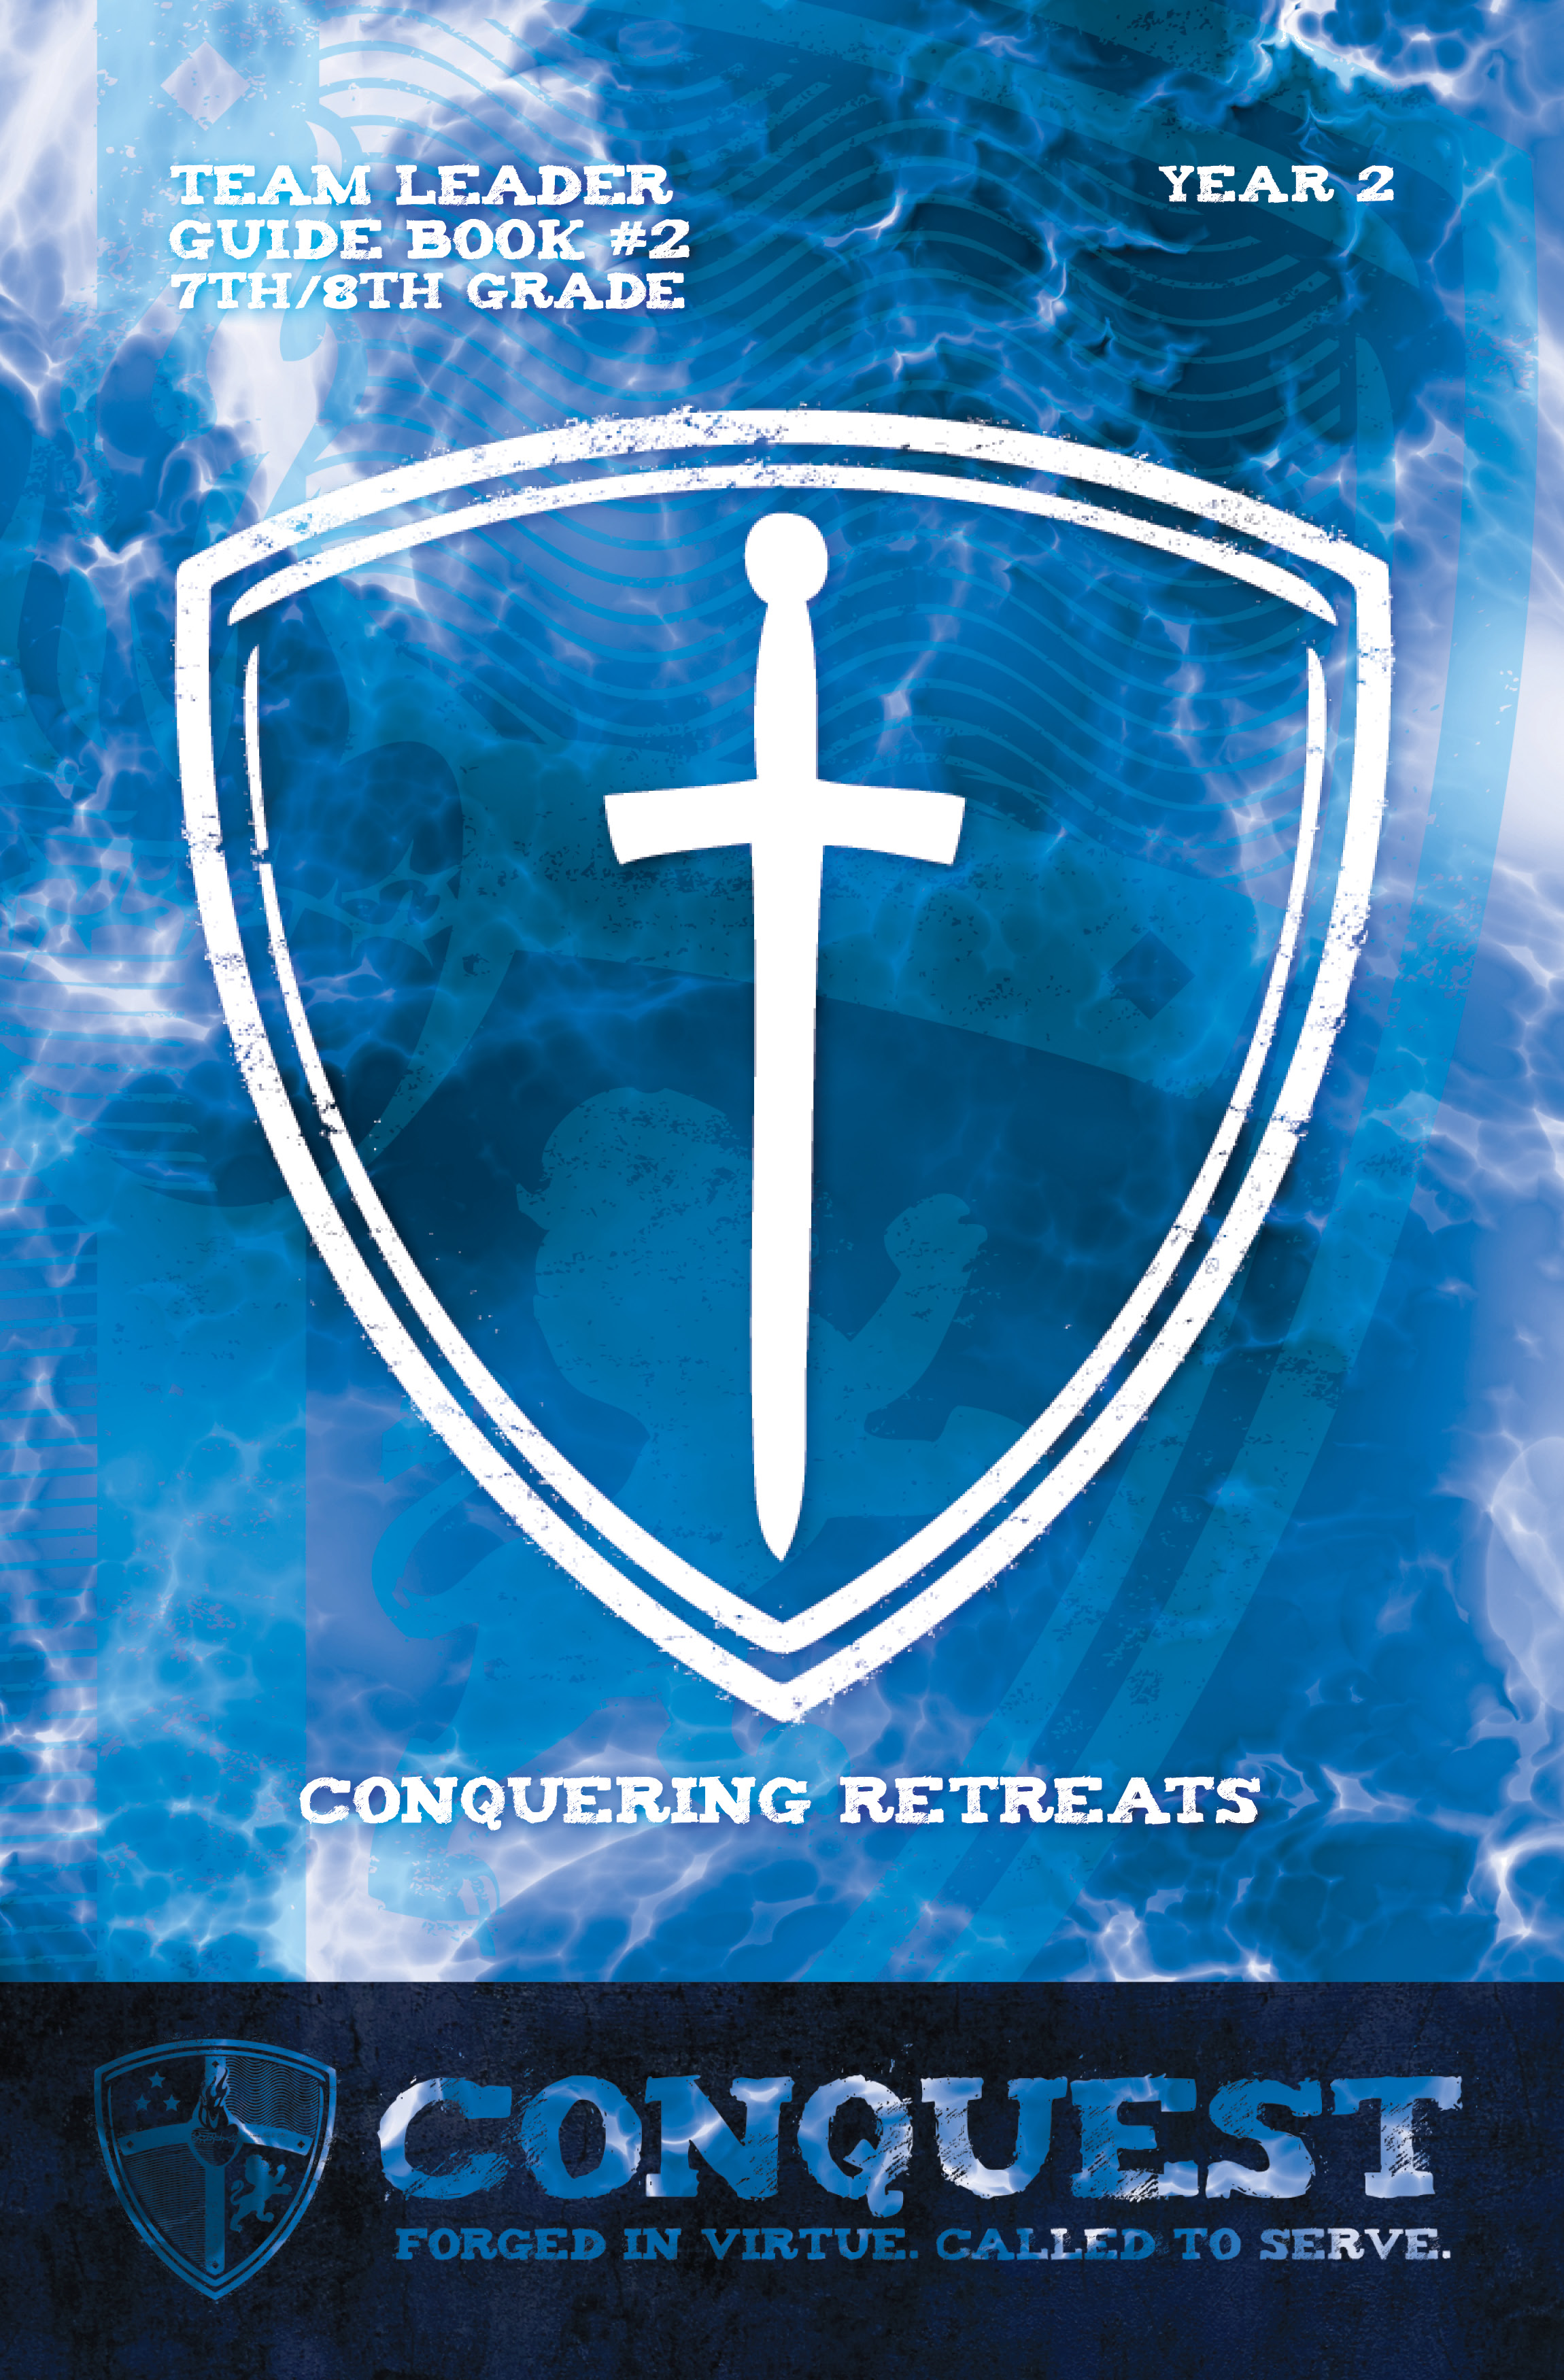 CQ_TL Guidebook 2013_7th 8th_Conquering Retreats_F COVER